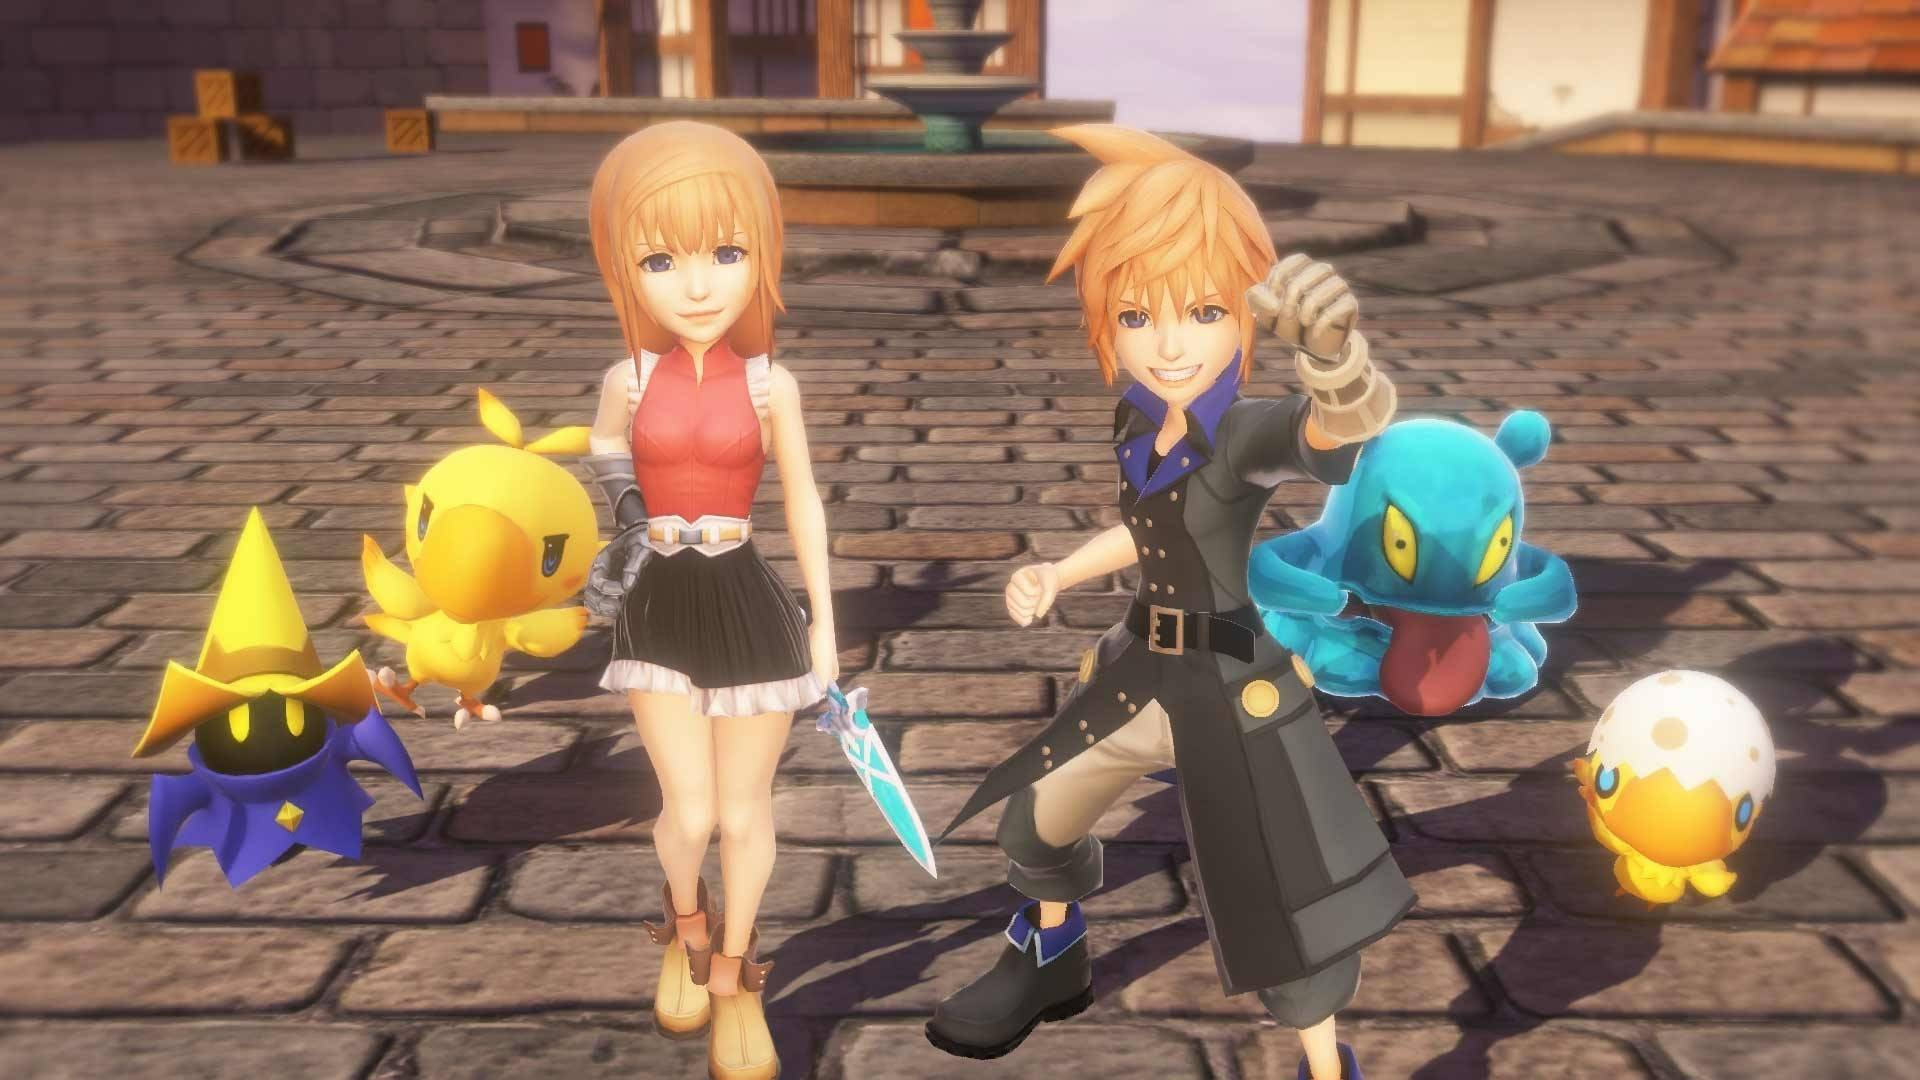 World of Final Fantasy Releases Day One Edition Its First Week on PC